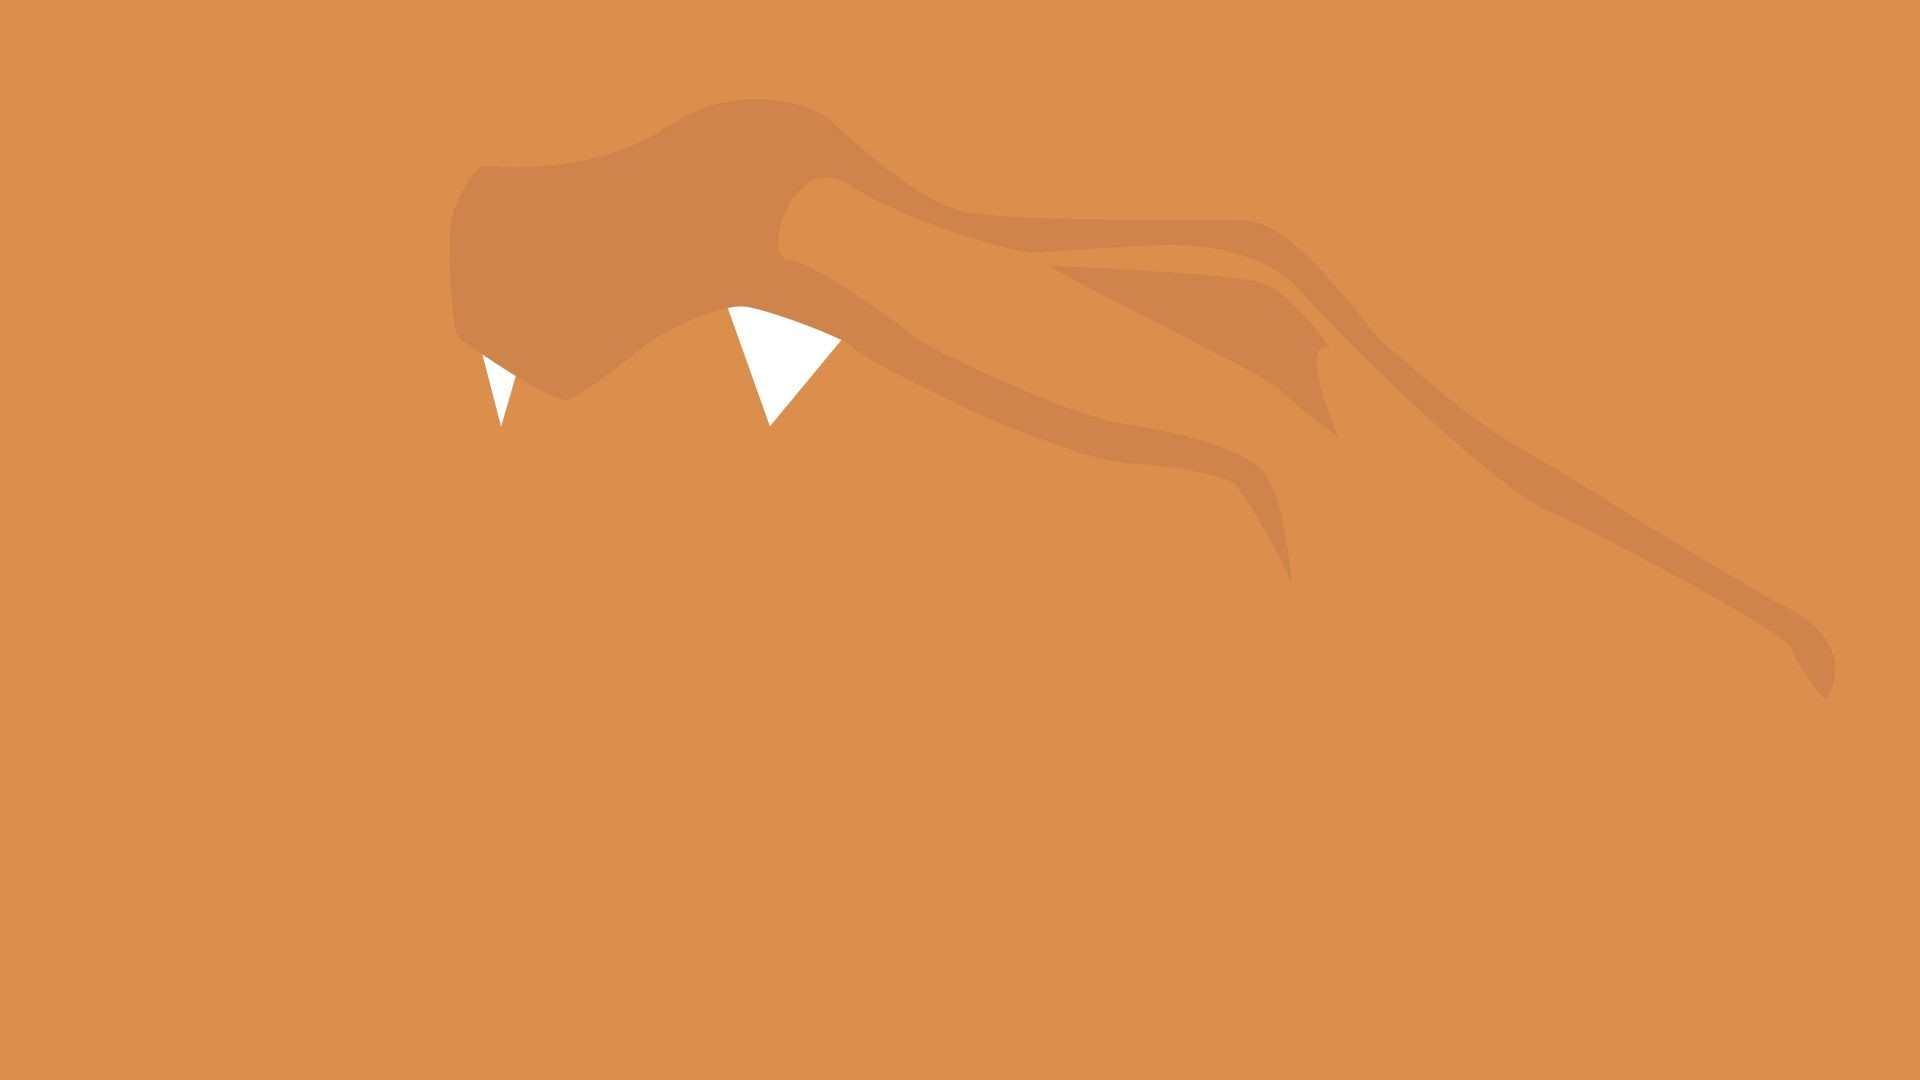 Res: 1920x1080, Check Out These Beautifully Minimalist Wallpapers of Every Pokémon .